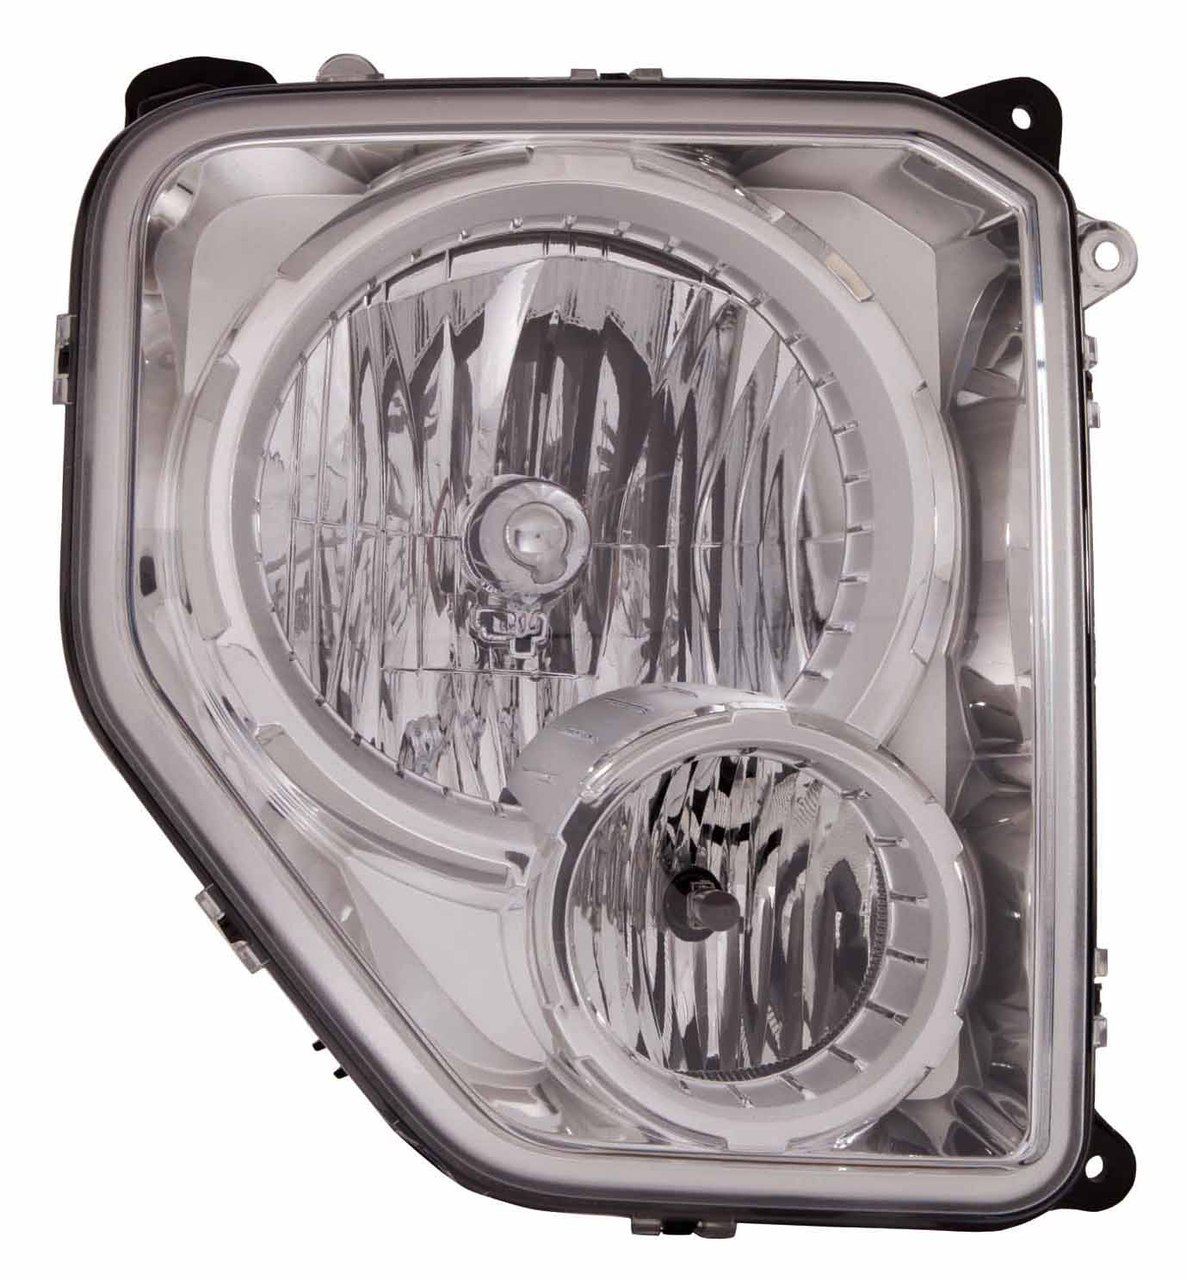 Jeep Liberty 2008 2009 2010 2011 2012 right passenger headlight (with fog lamp)